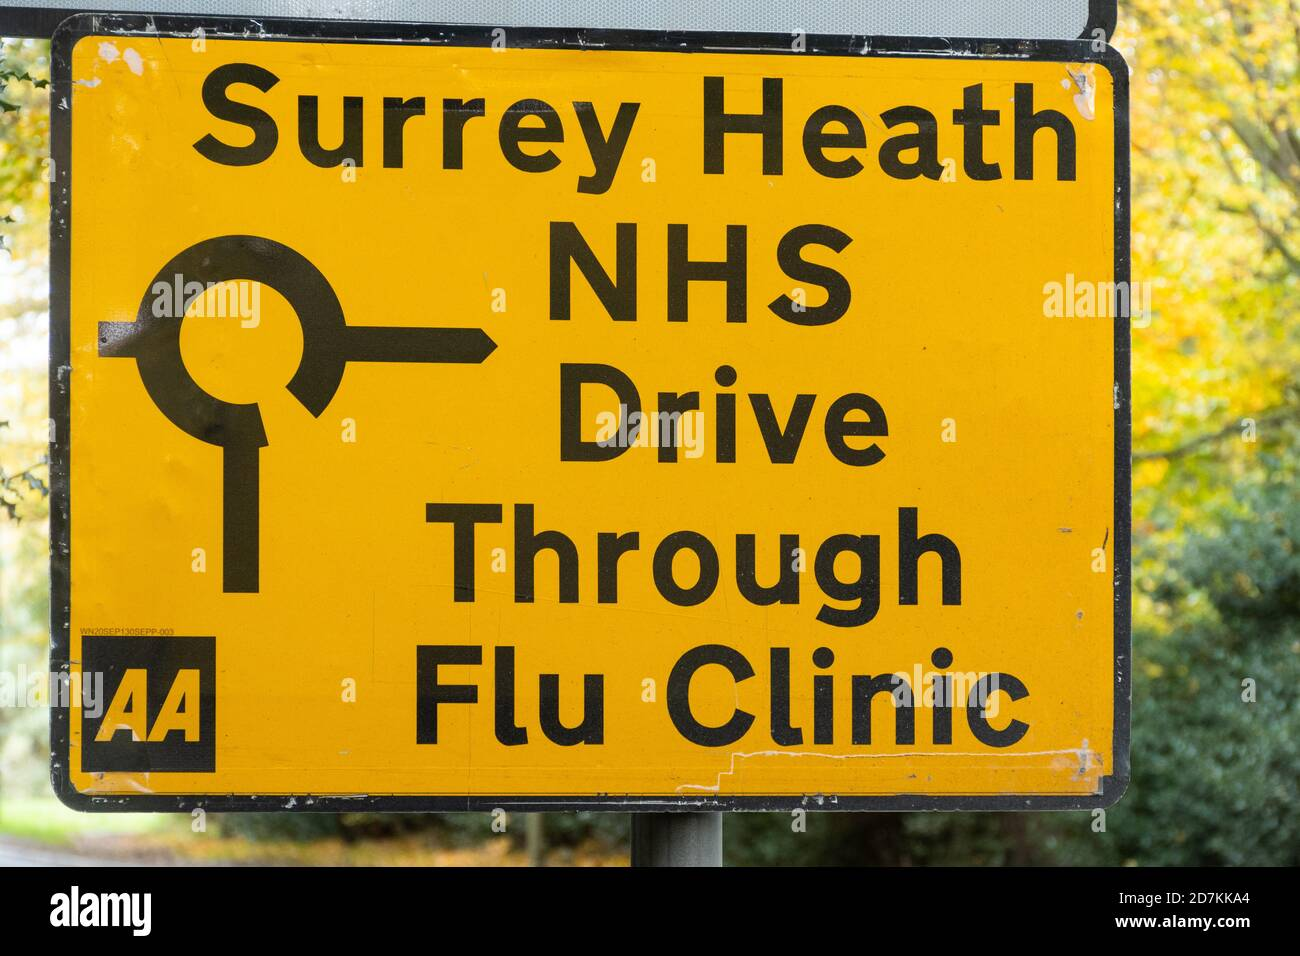 Road sign to an NHS drive through flu clinic providing influenza jabs vaccinations immunizations, Surrey, UK Stock Photo